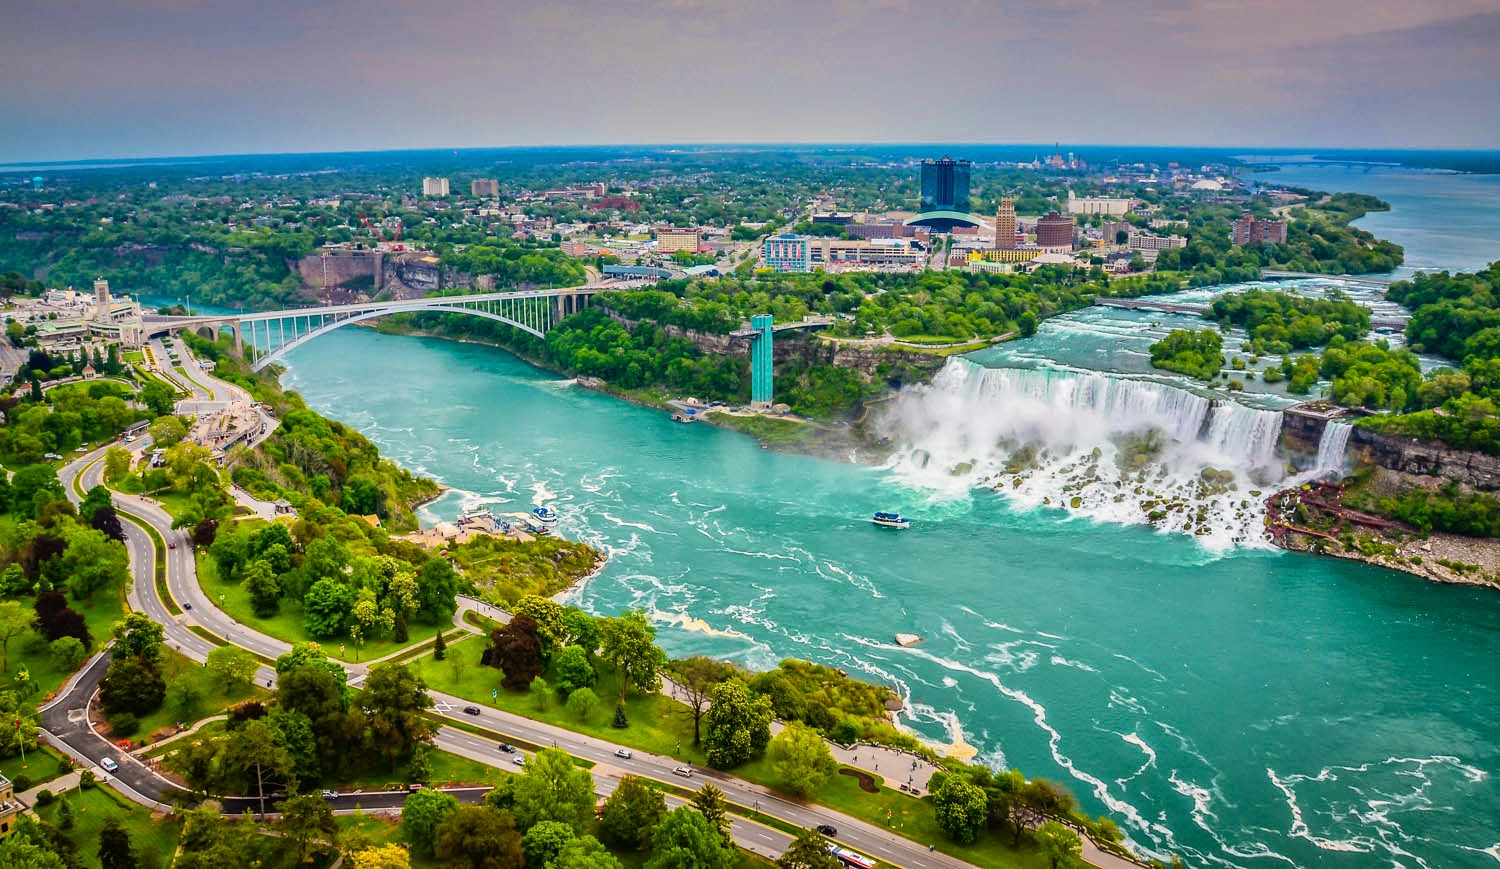 The most beautiful pictures of Niagara falls